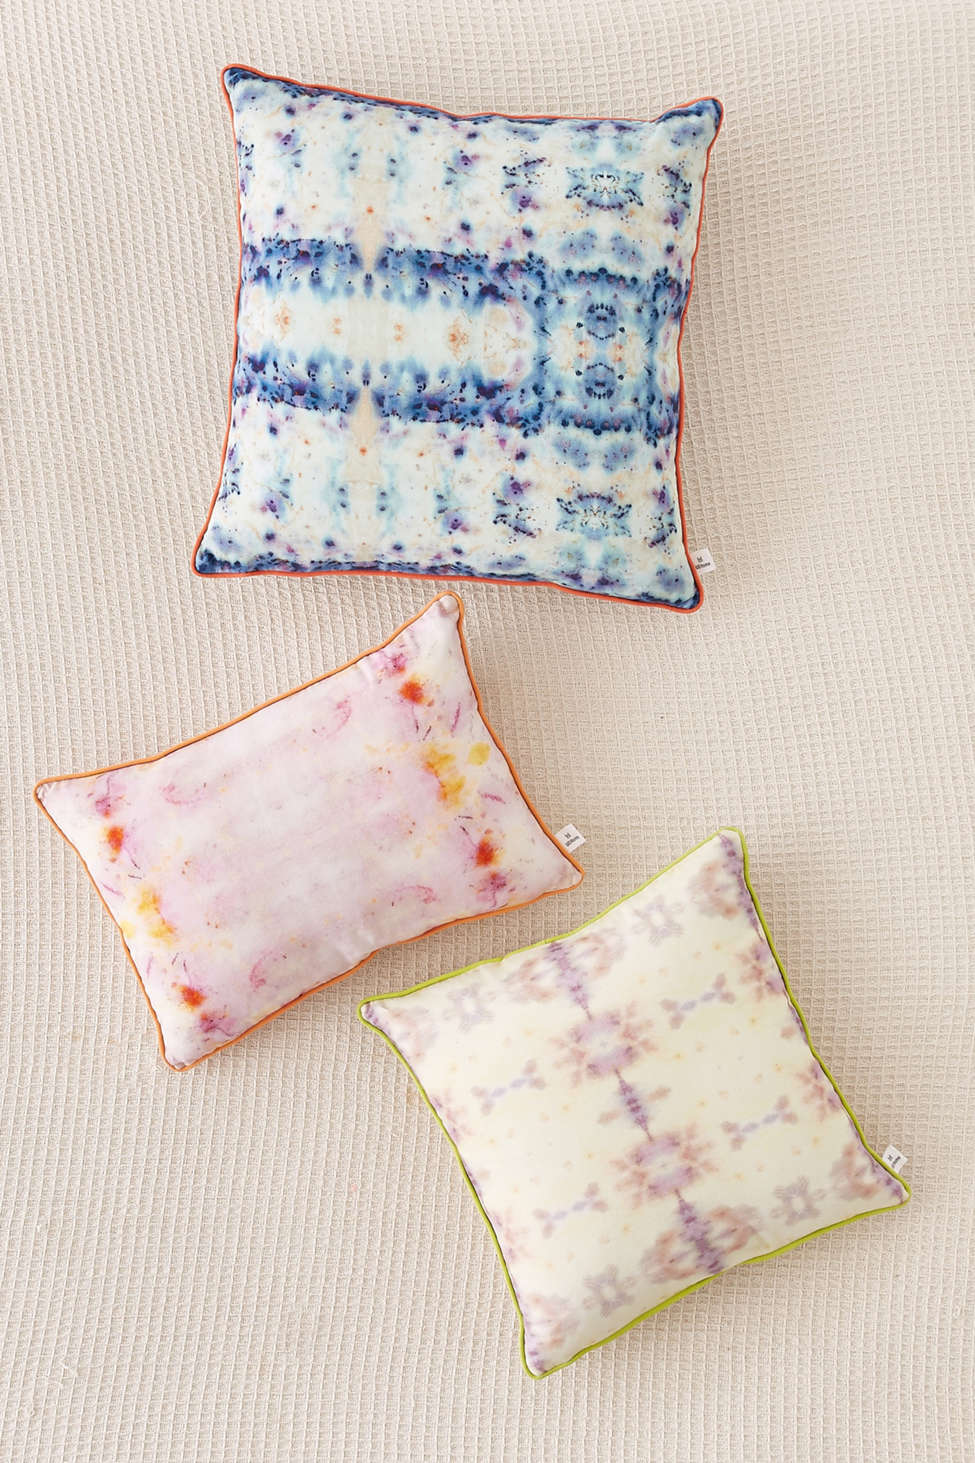 Slide View: 1: Mila Mirror Dye Throw Pillow